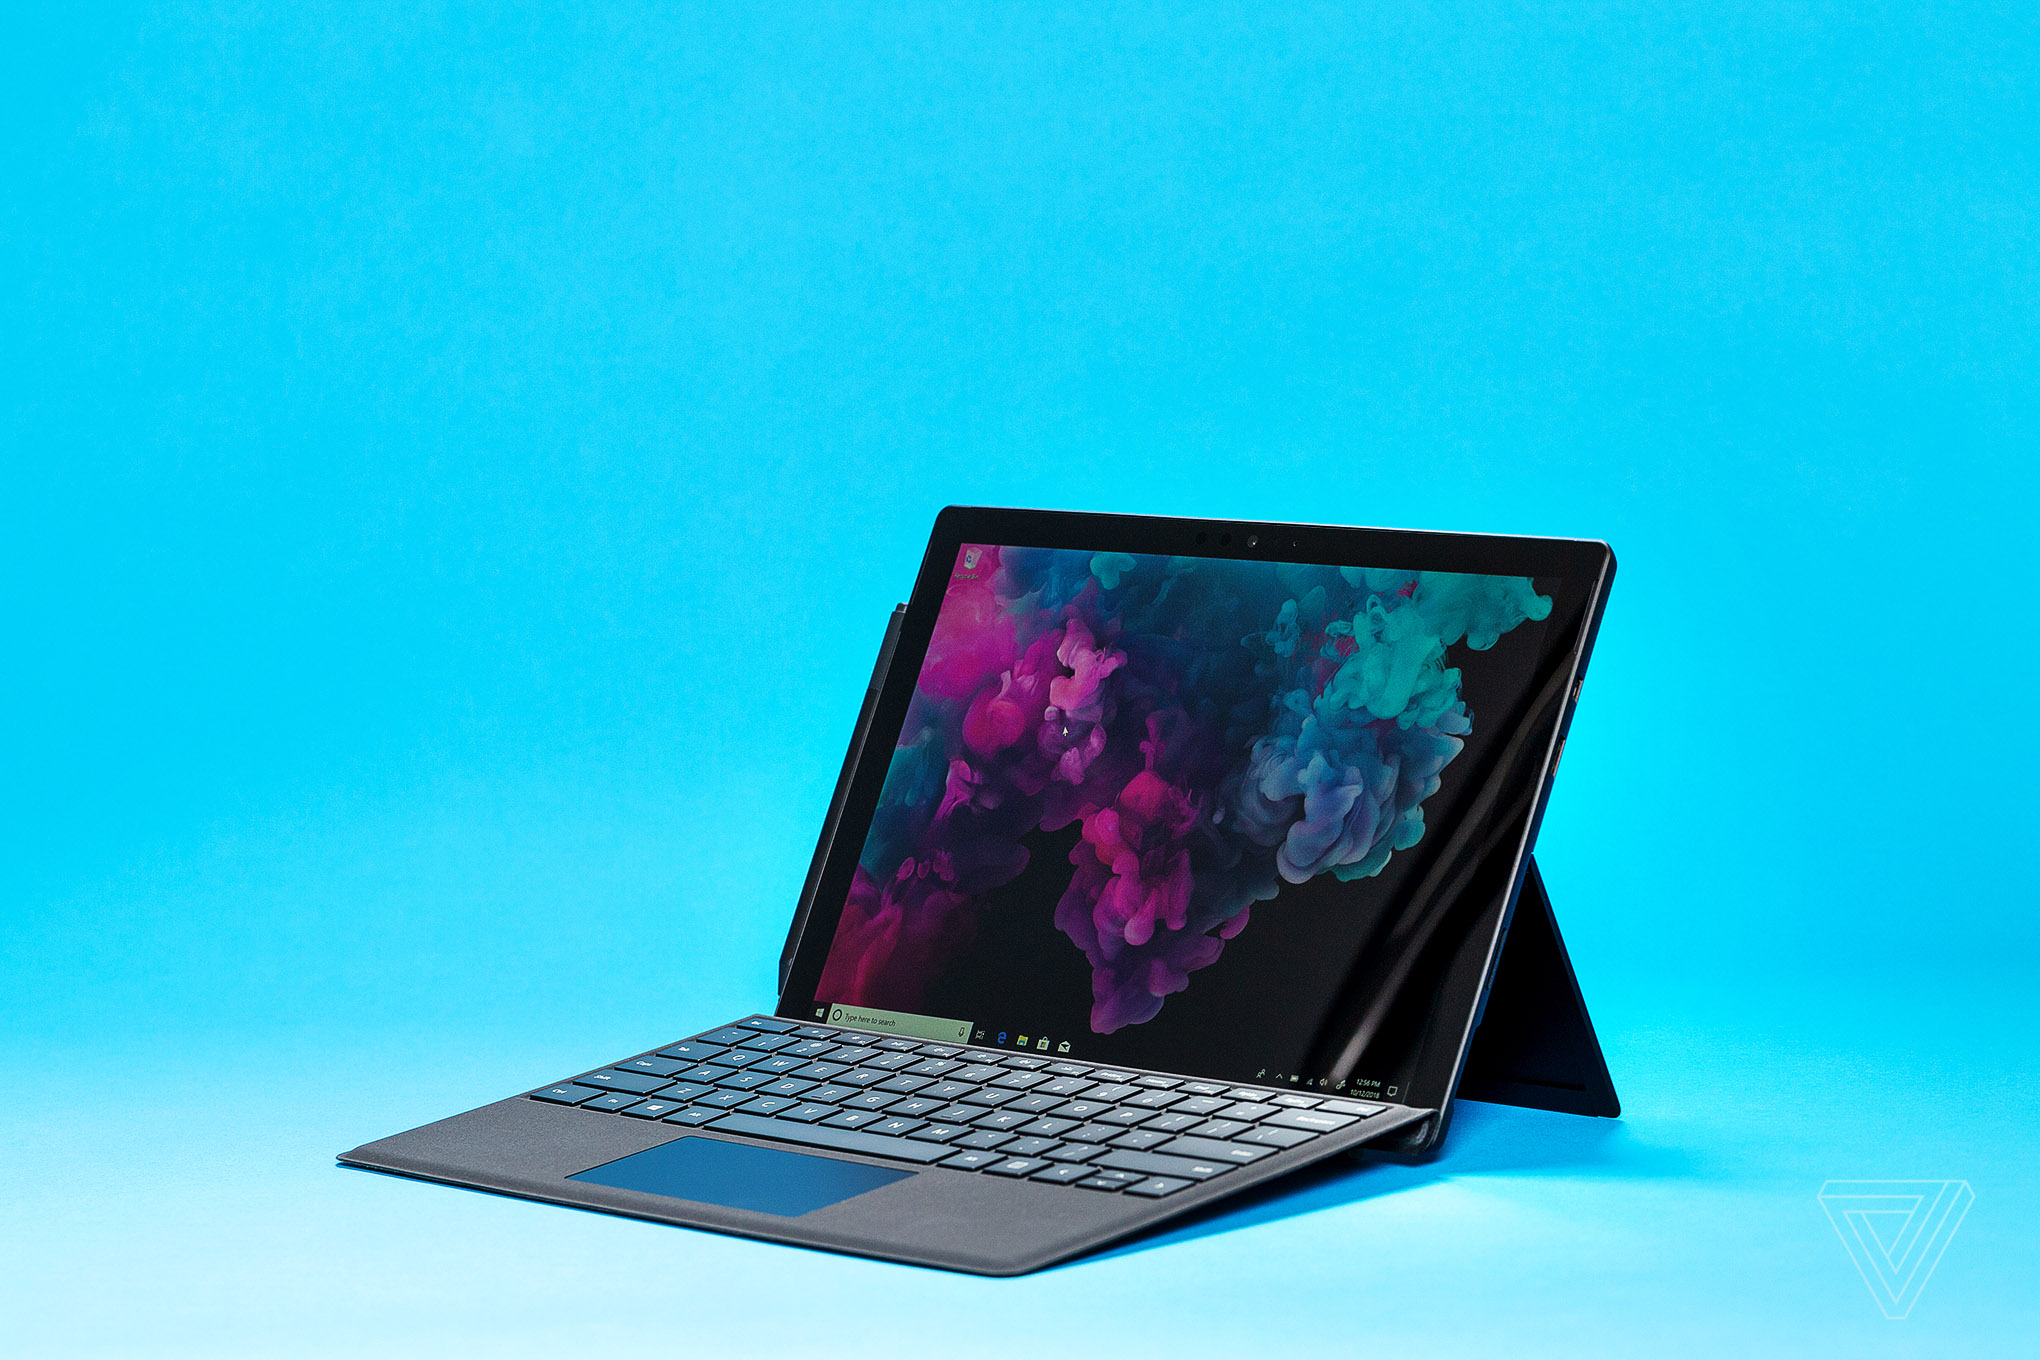 Microsoft Surface Pro 6 review: a familiar bet - The Verge